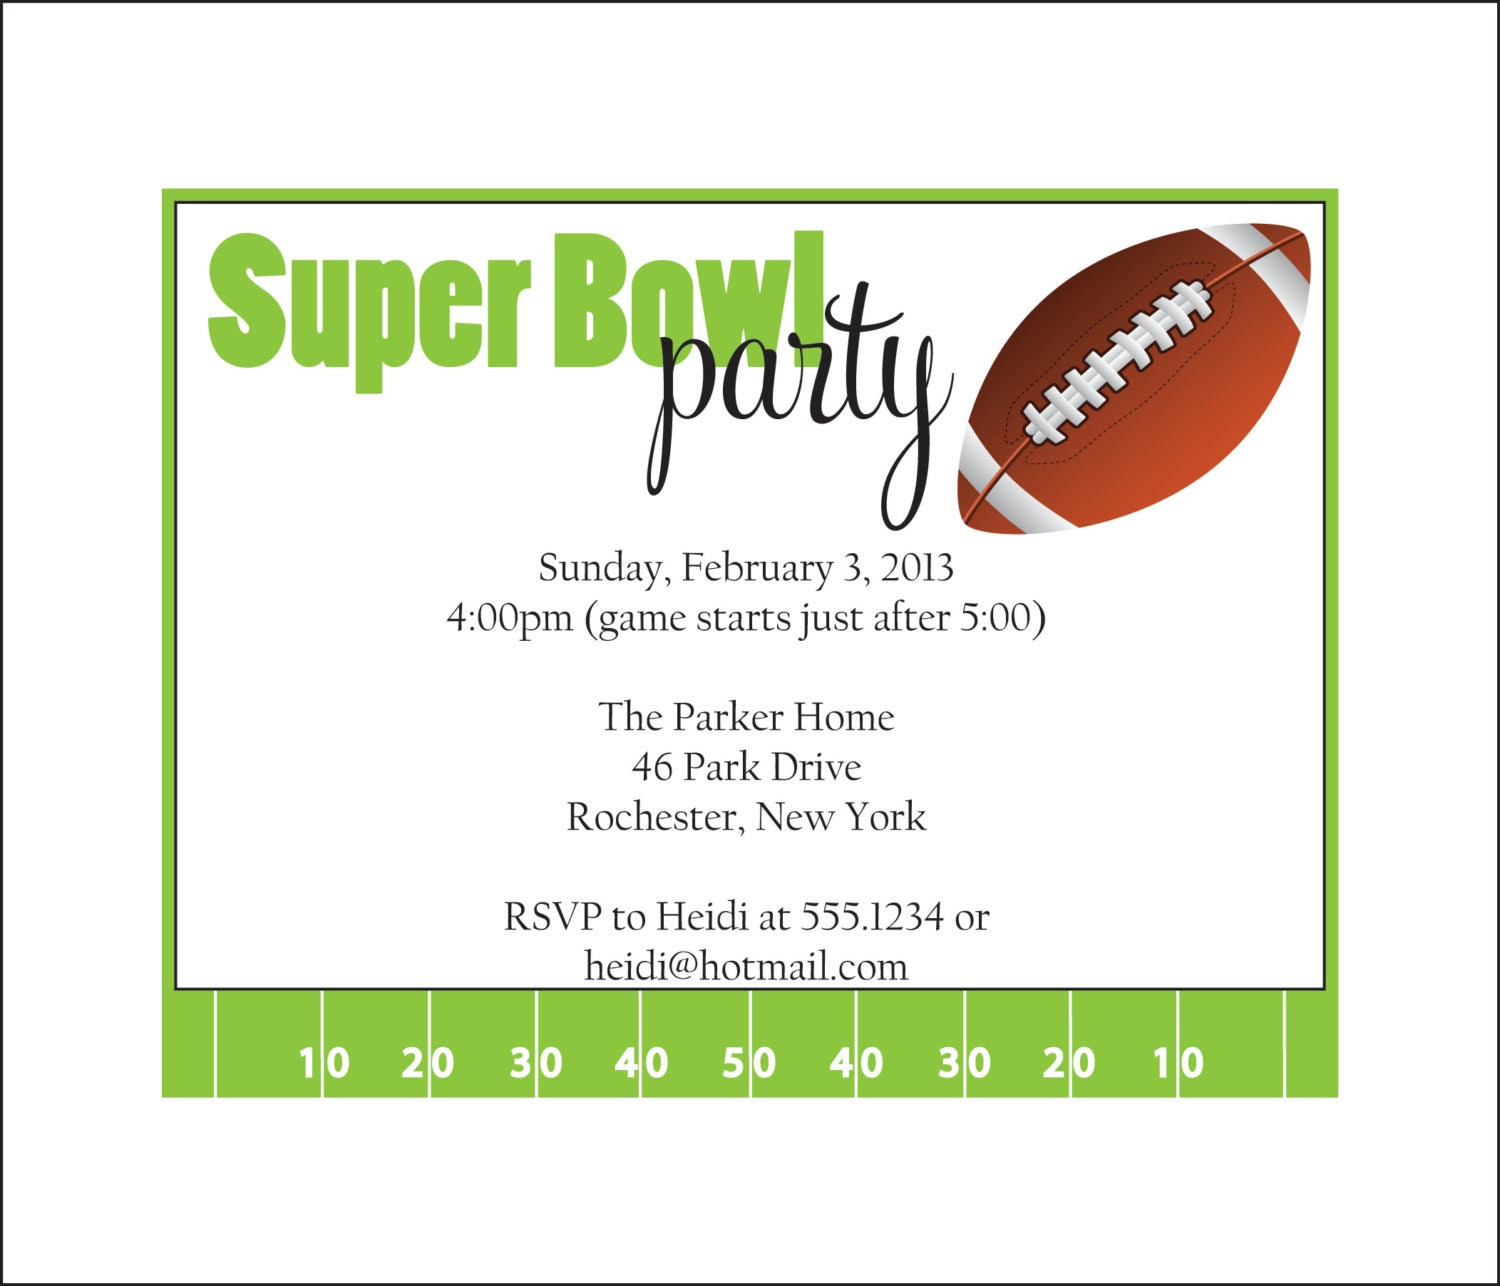 Current image with regard to super bowl party invitations free printable